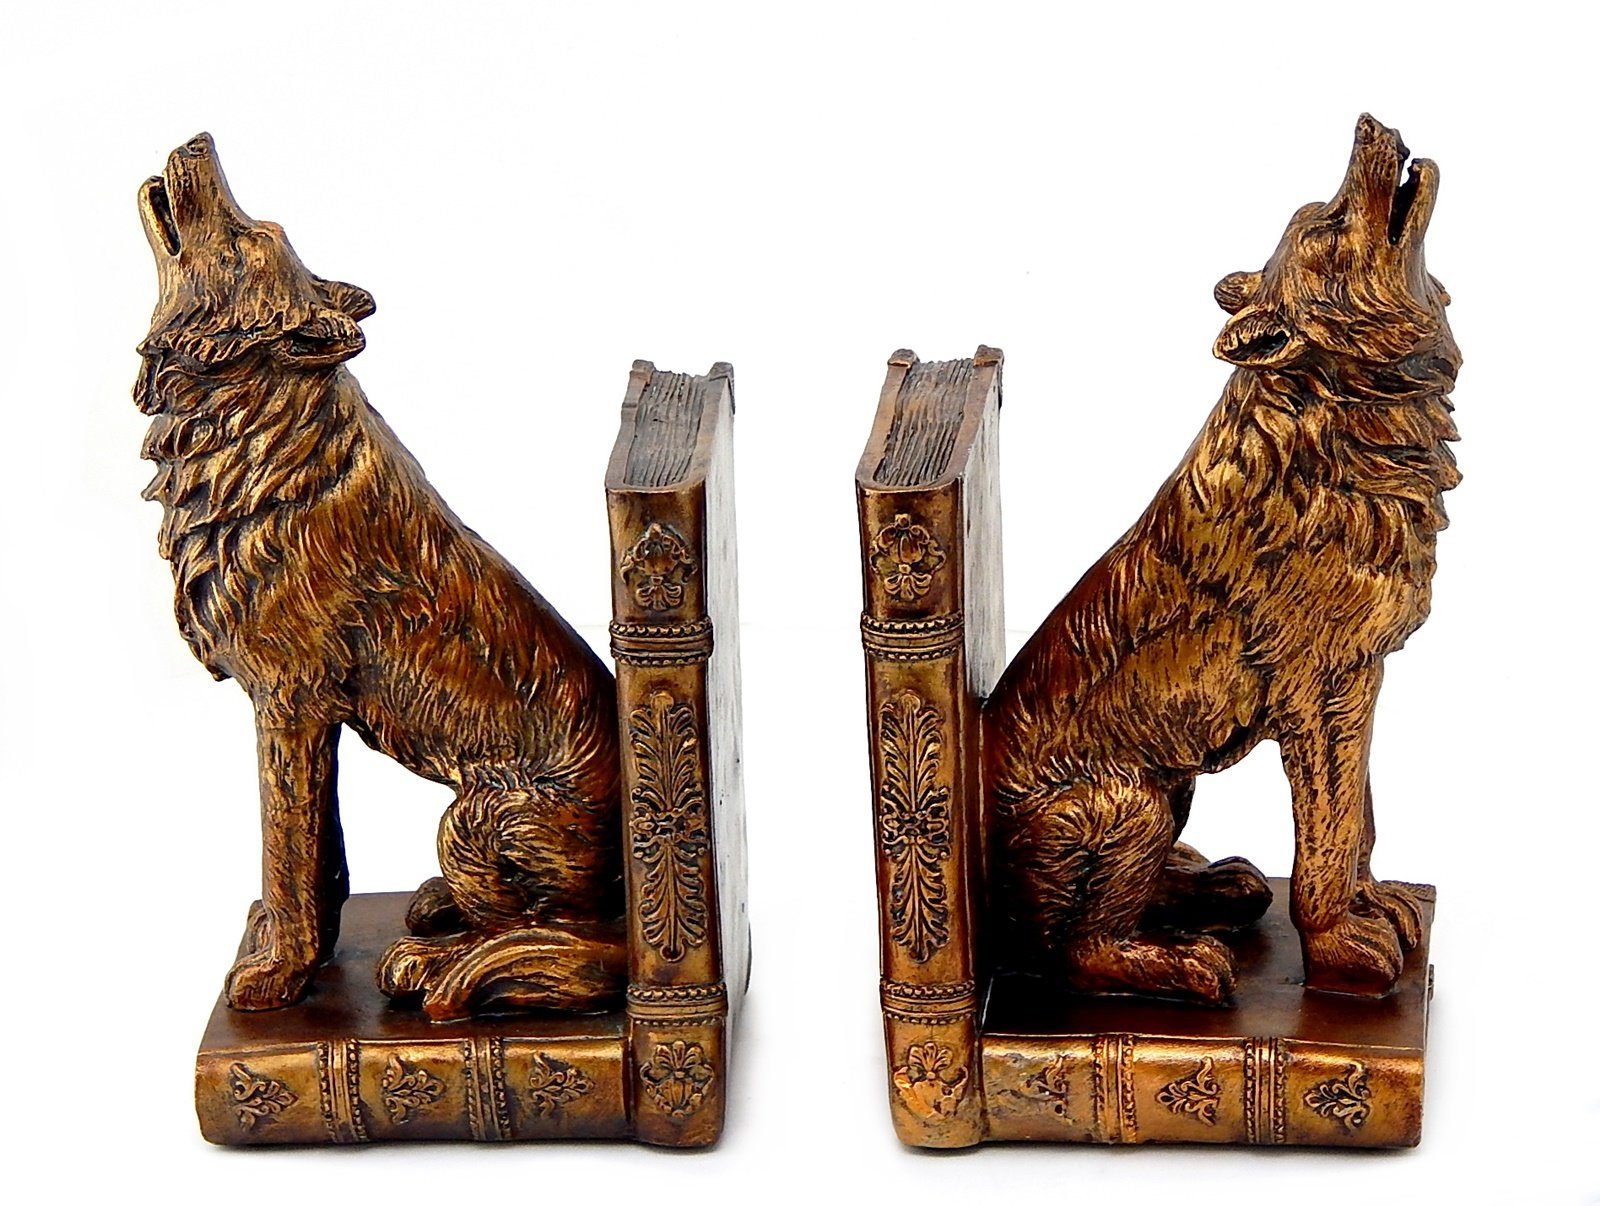 Bellaa 26362 Howling Wolf Bookends 7 Inch